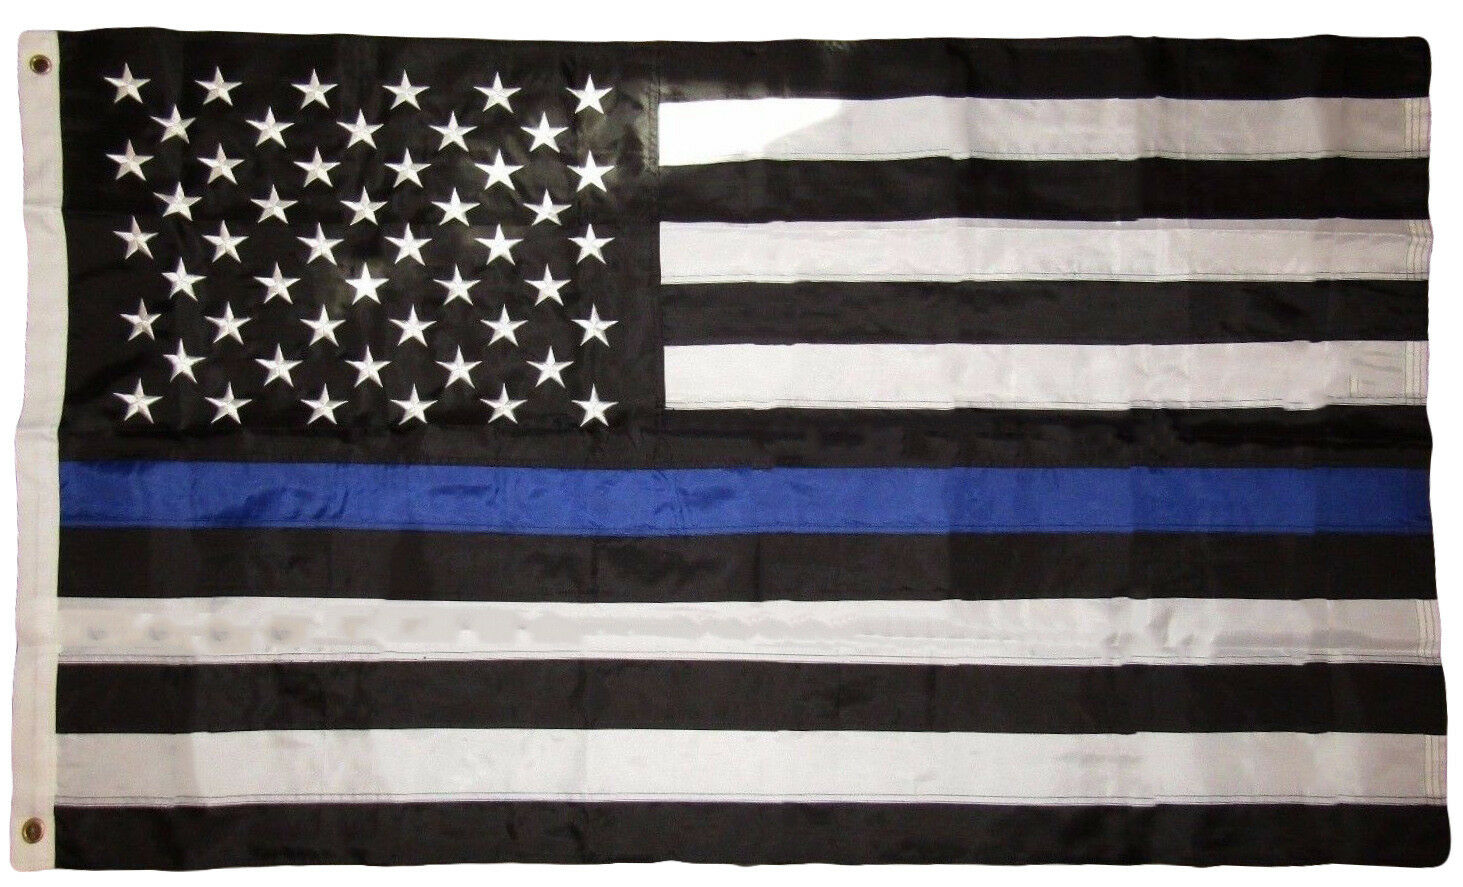 The Thin Blue Line represents the relationship of the police in the community as the protectors of the citizenry from the criminal element It represents those men